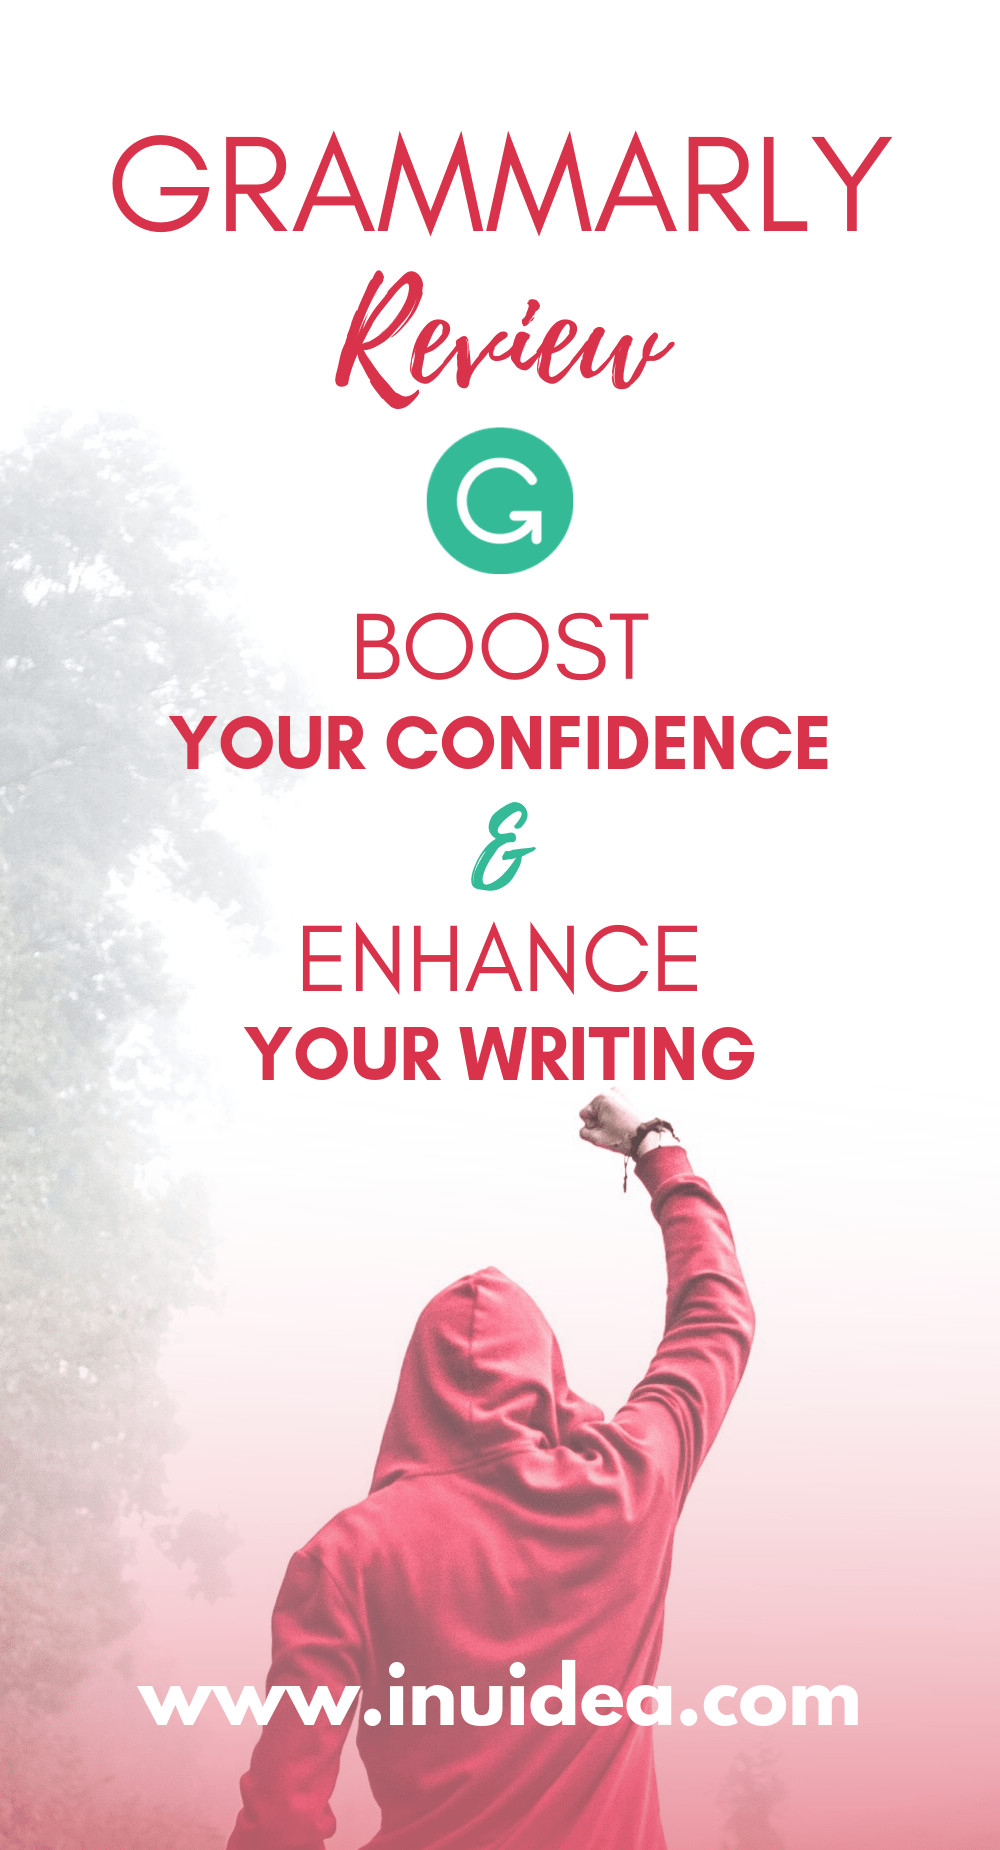 Buy Proofreading Software Grammarly Retail Store